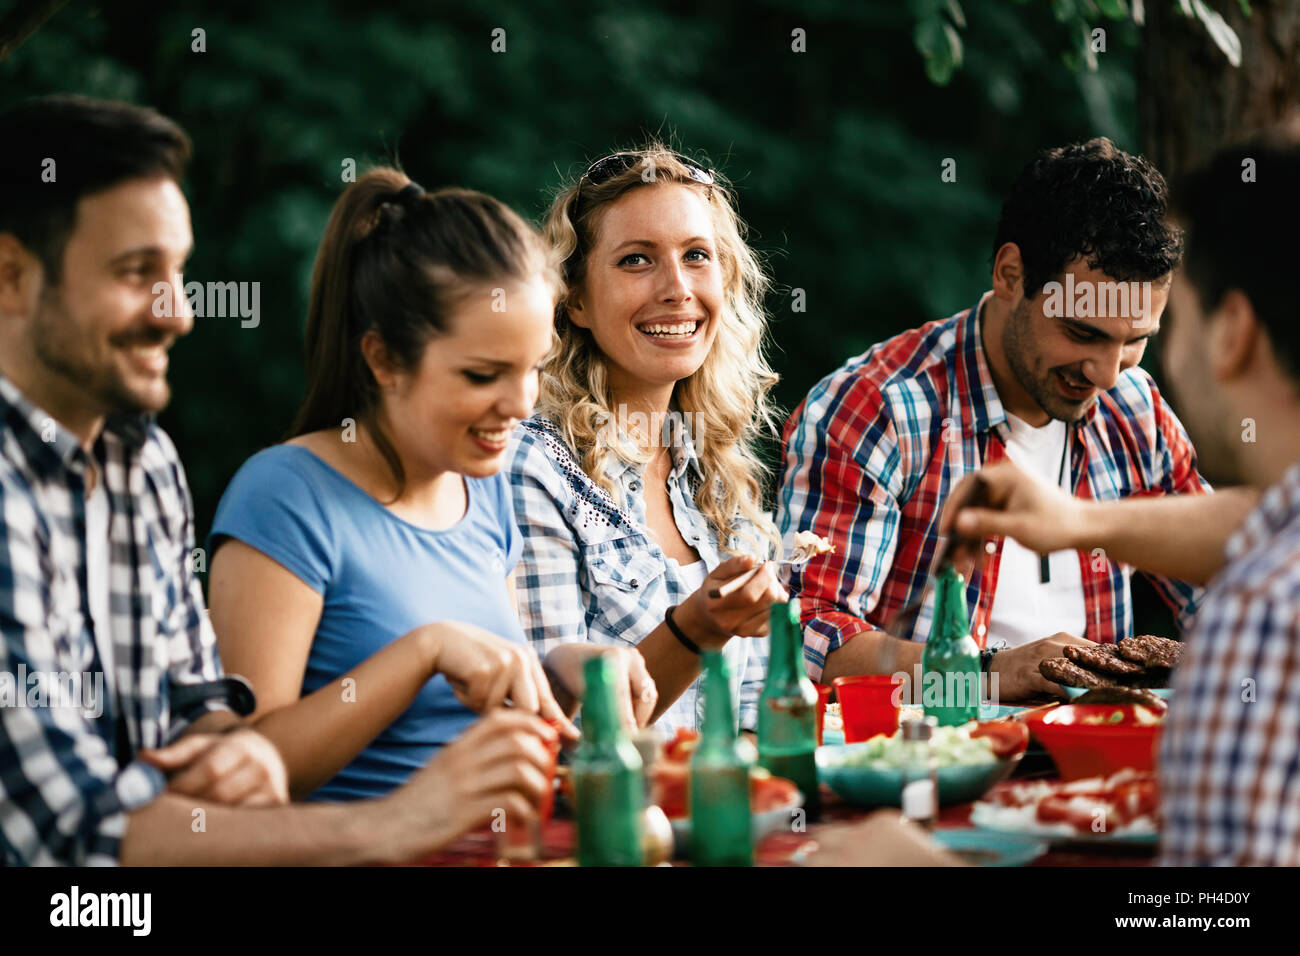 Group of happy people eating food outdoors - Stock Image